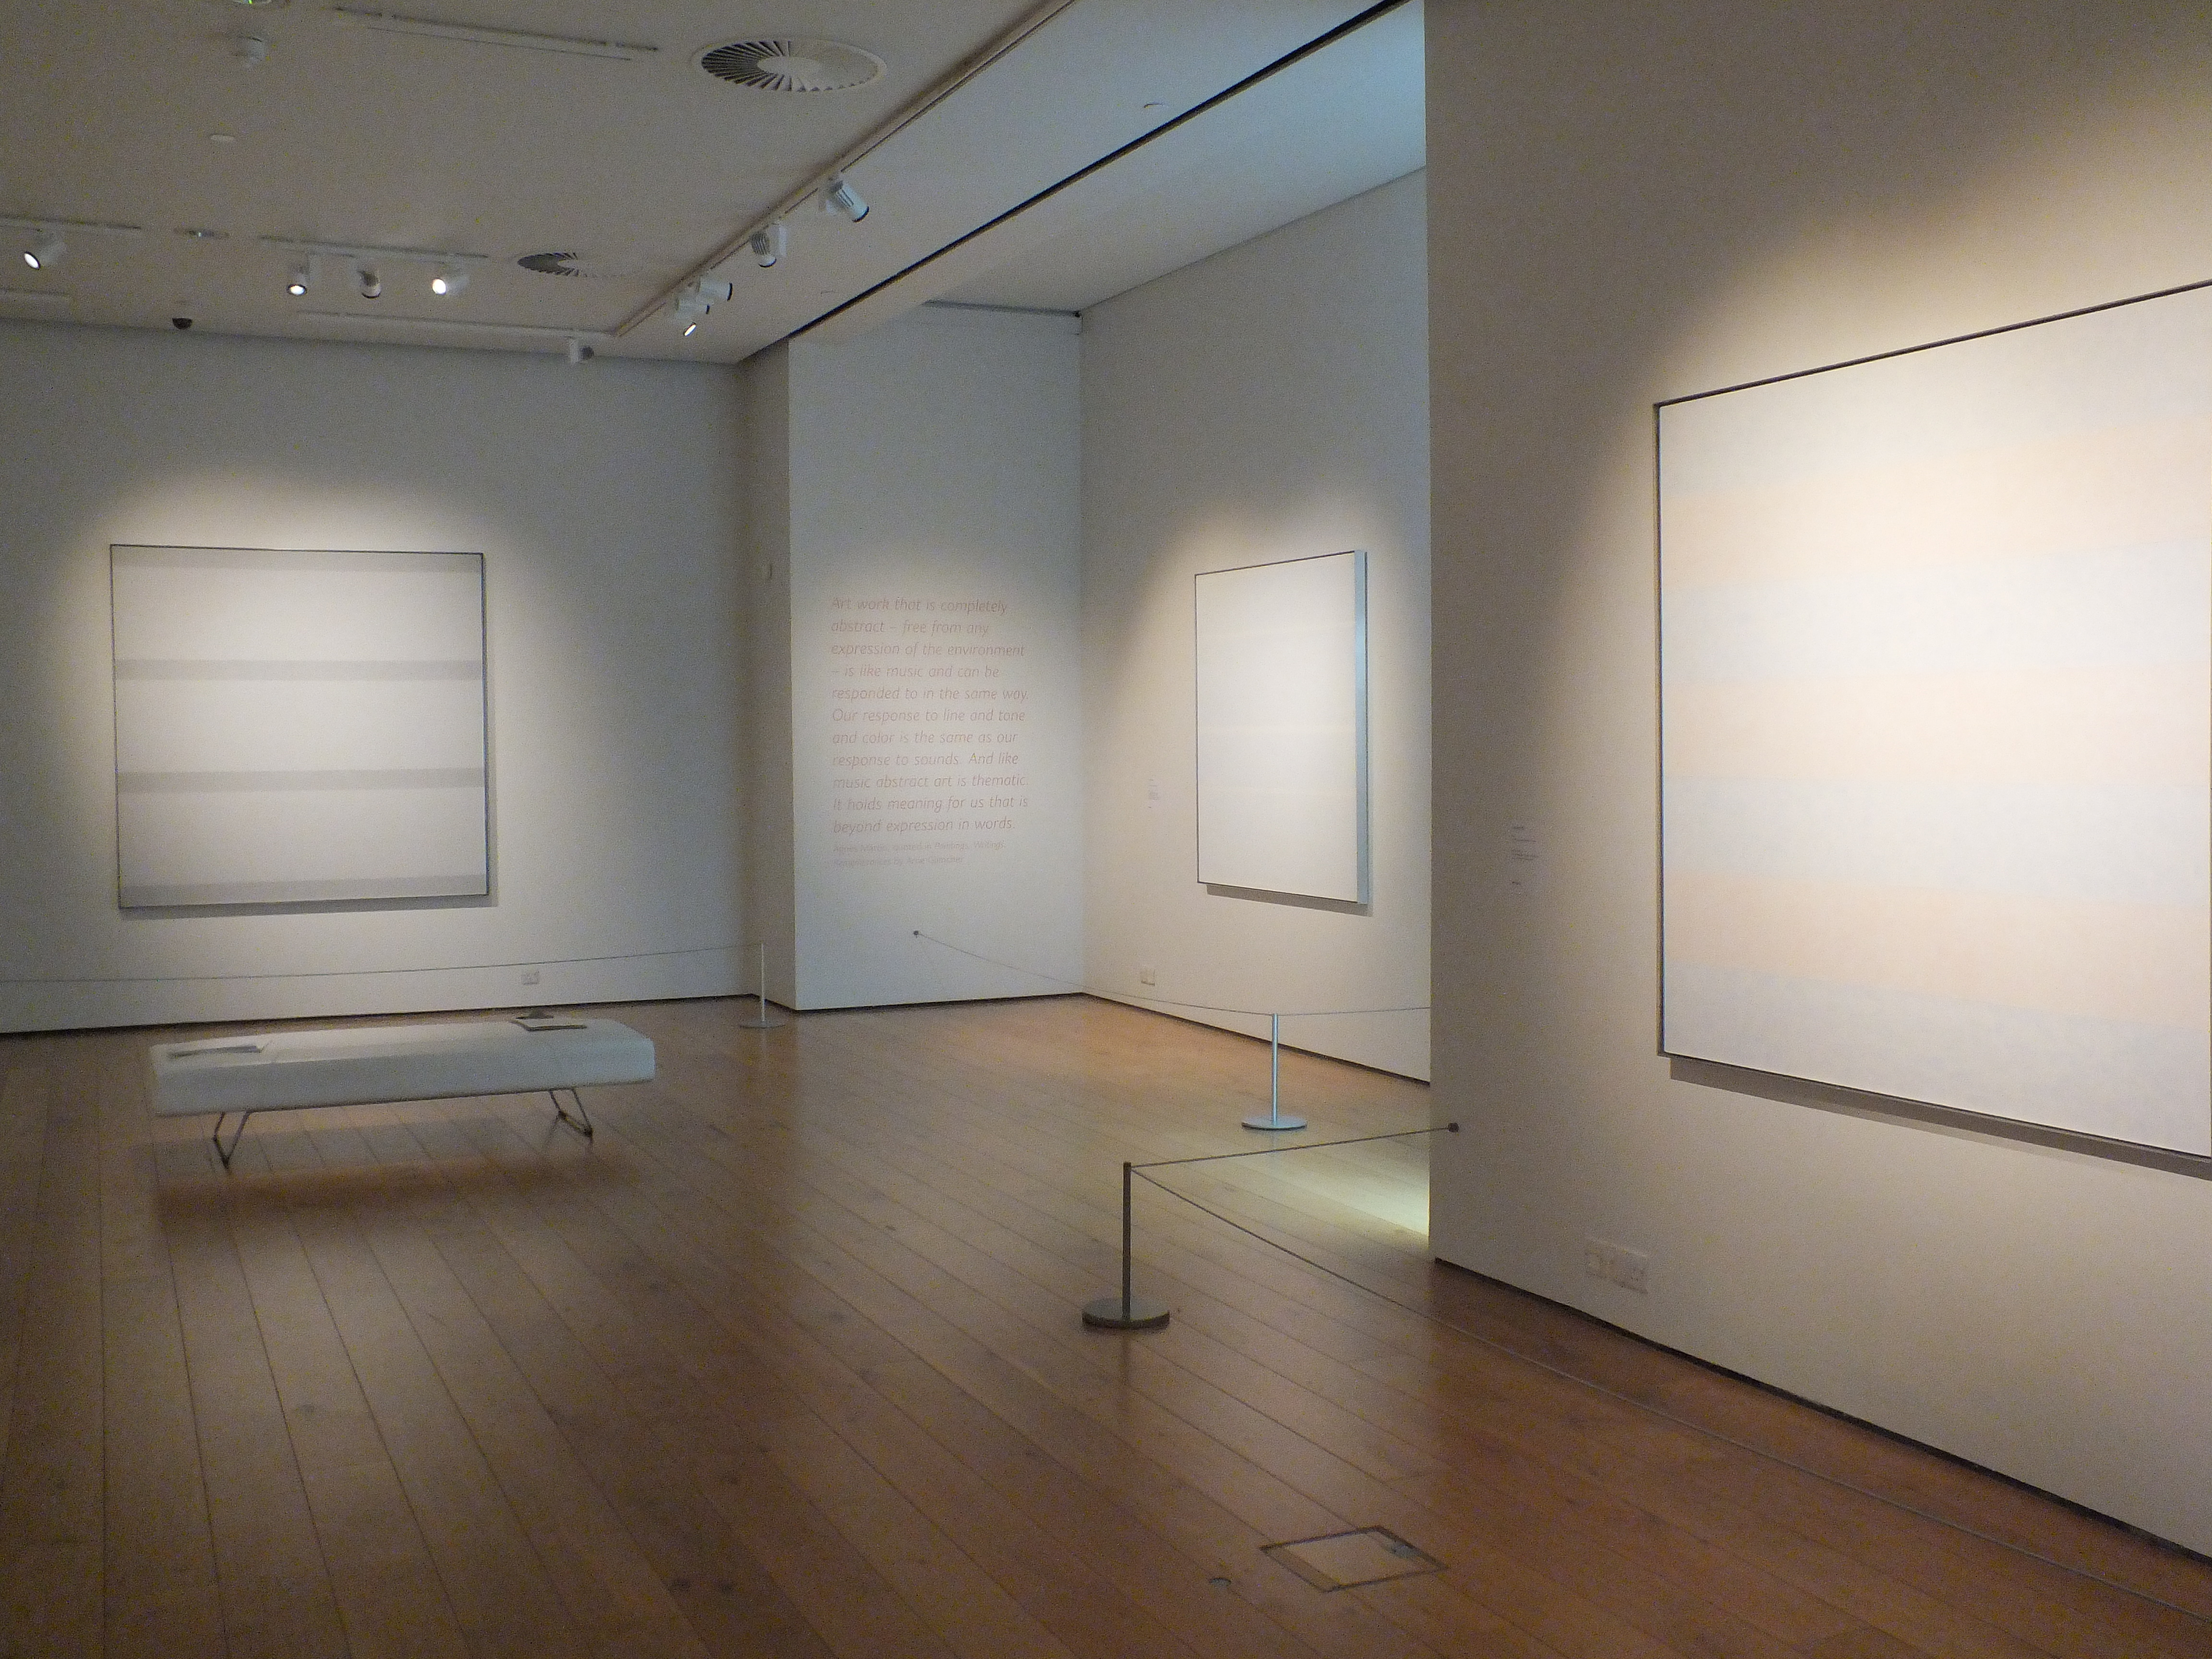 Agnes Martin at The Gallery